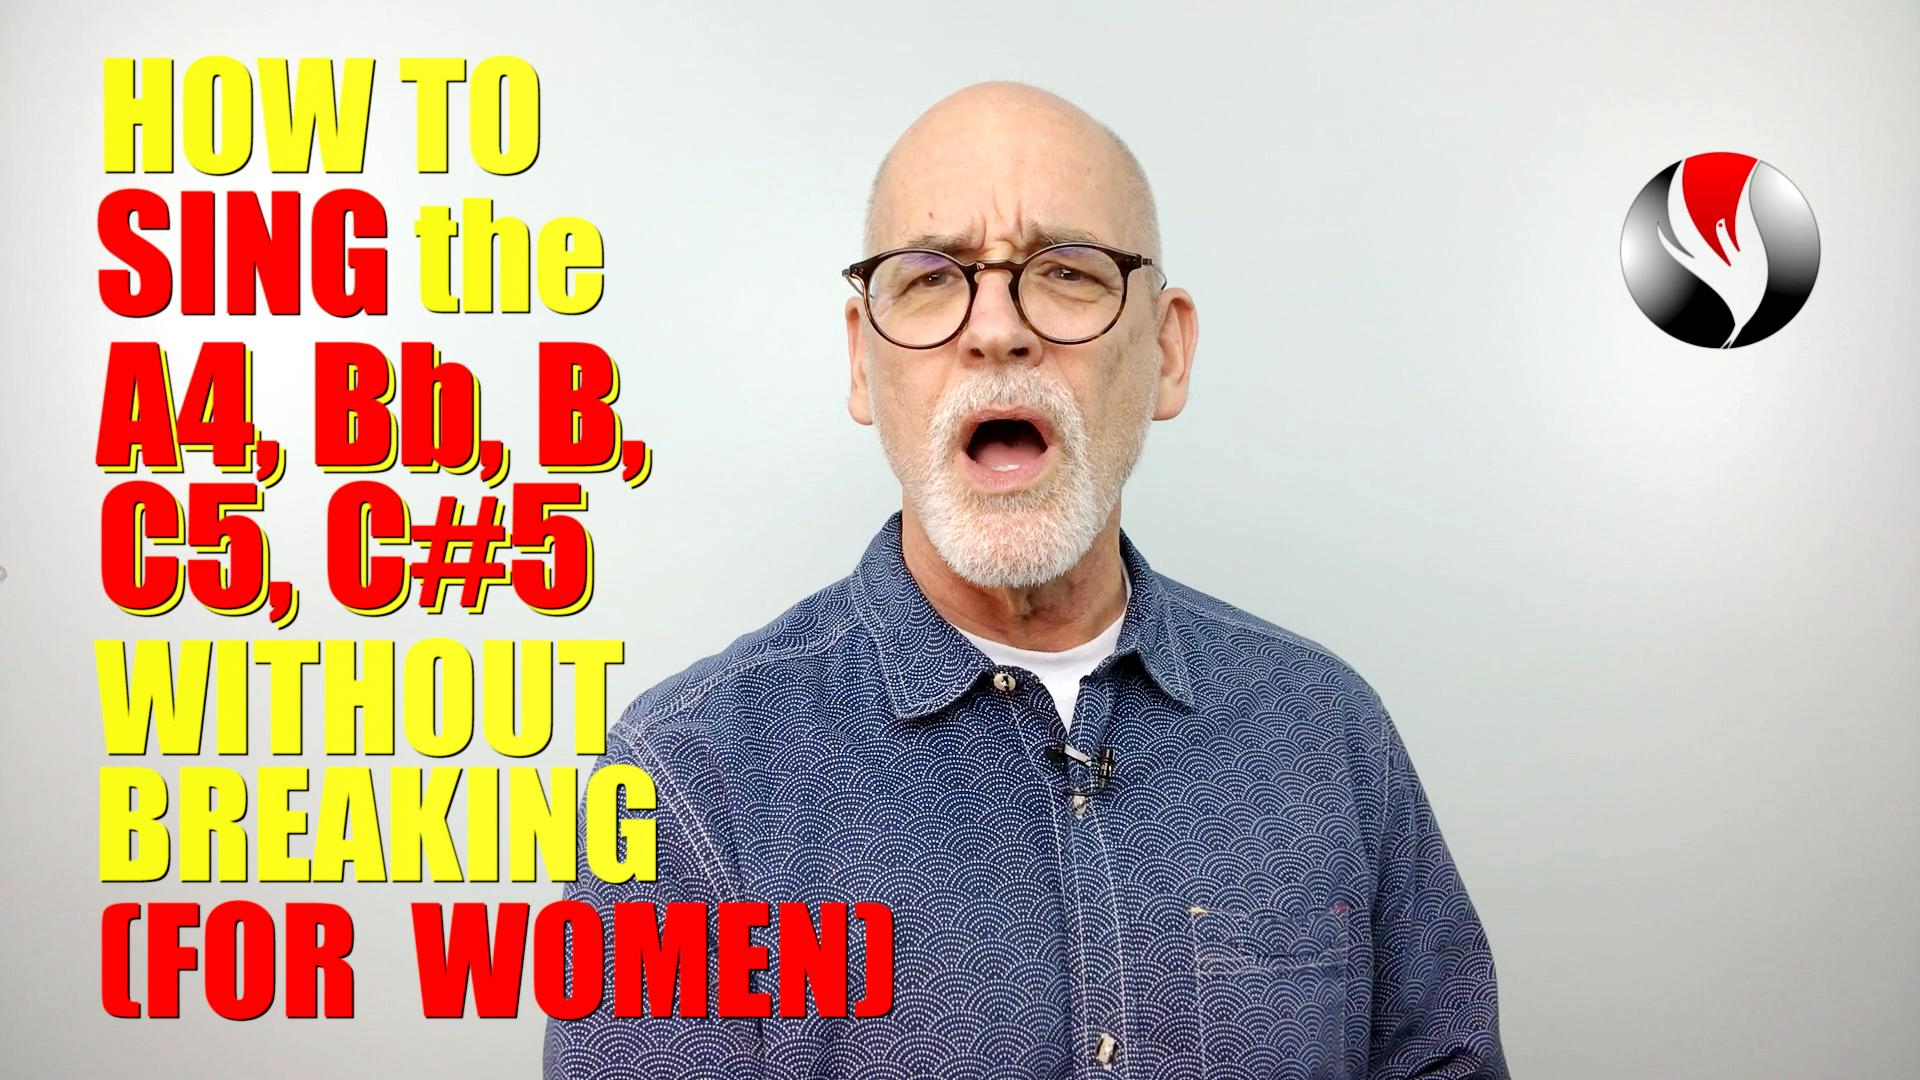 How to Sing the A4, Bb, B, C5, C-Sharp Without Breaking – For Women